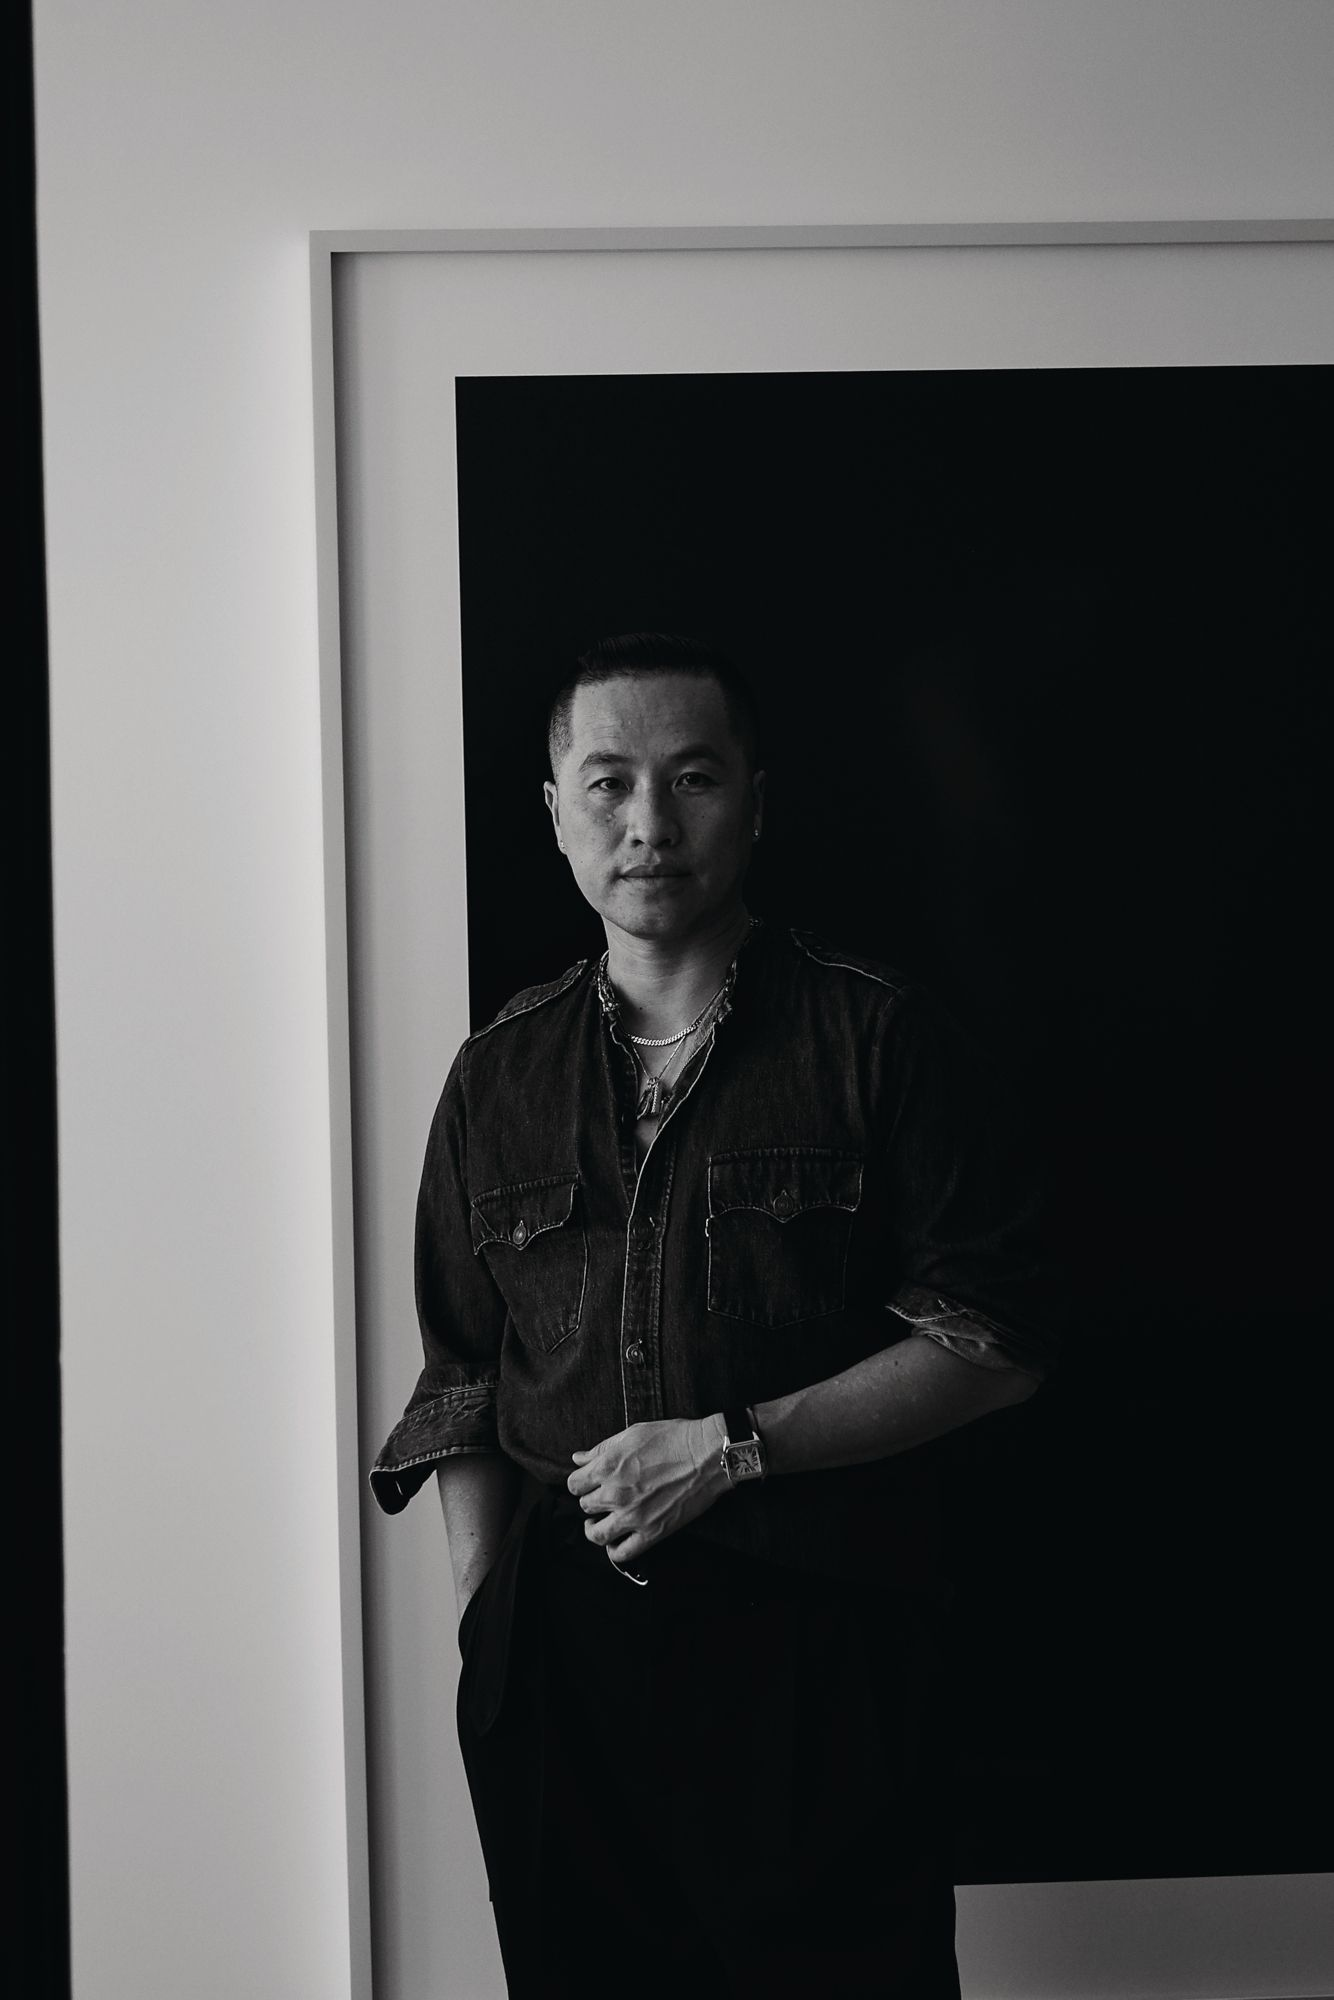 Inside Phillip Lim's New York City Loft: His Thoughts On Working From Home And Nurturing Creativity